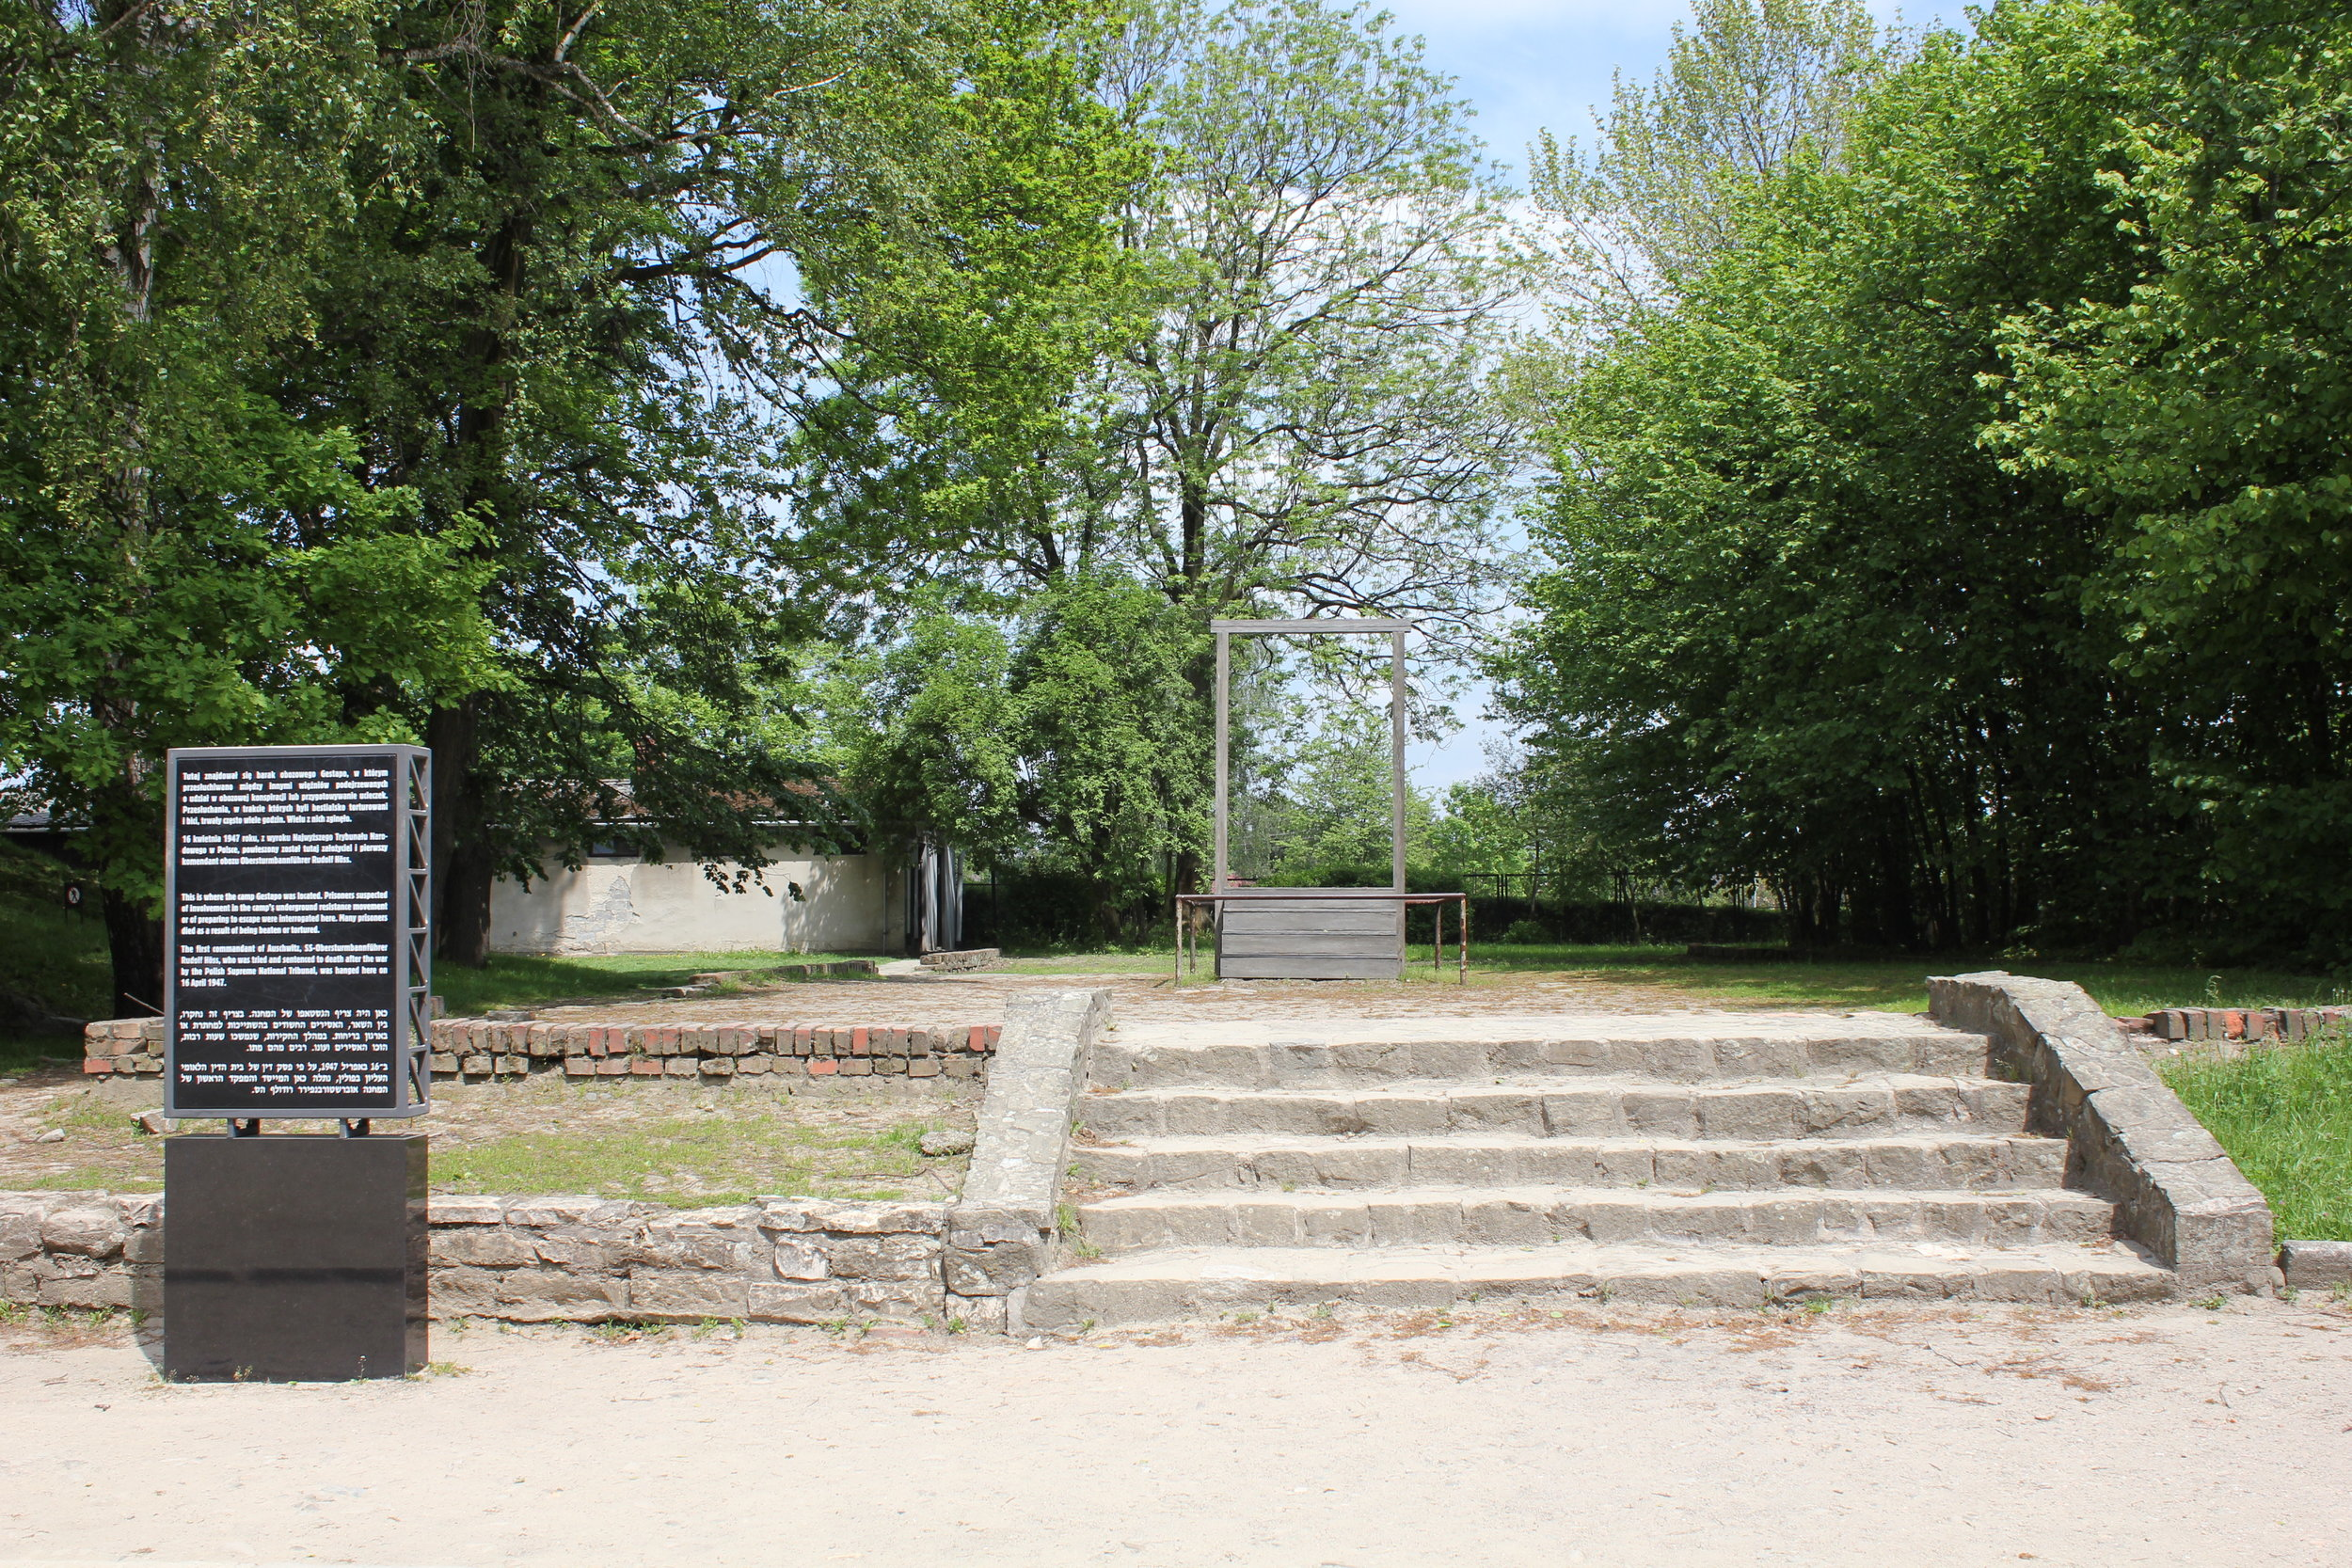 Immediately outside Krema I, the gallows where Rudolf Höss, one of the longest-serving chief commanders of Auschwitz concentration camp, was hung after the war